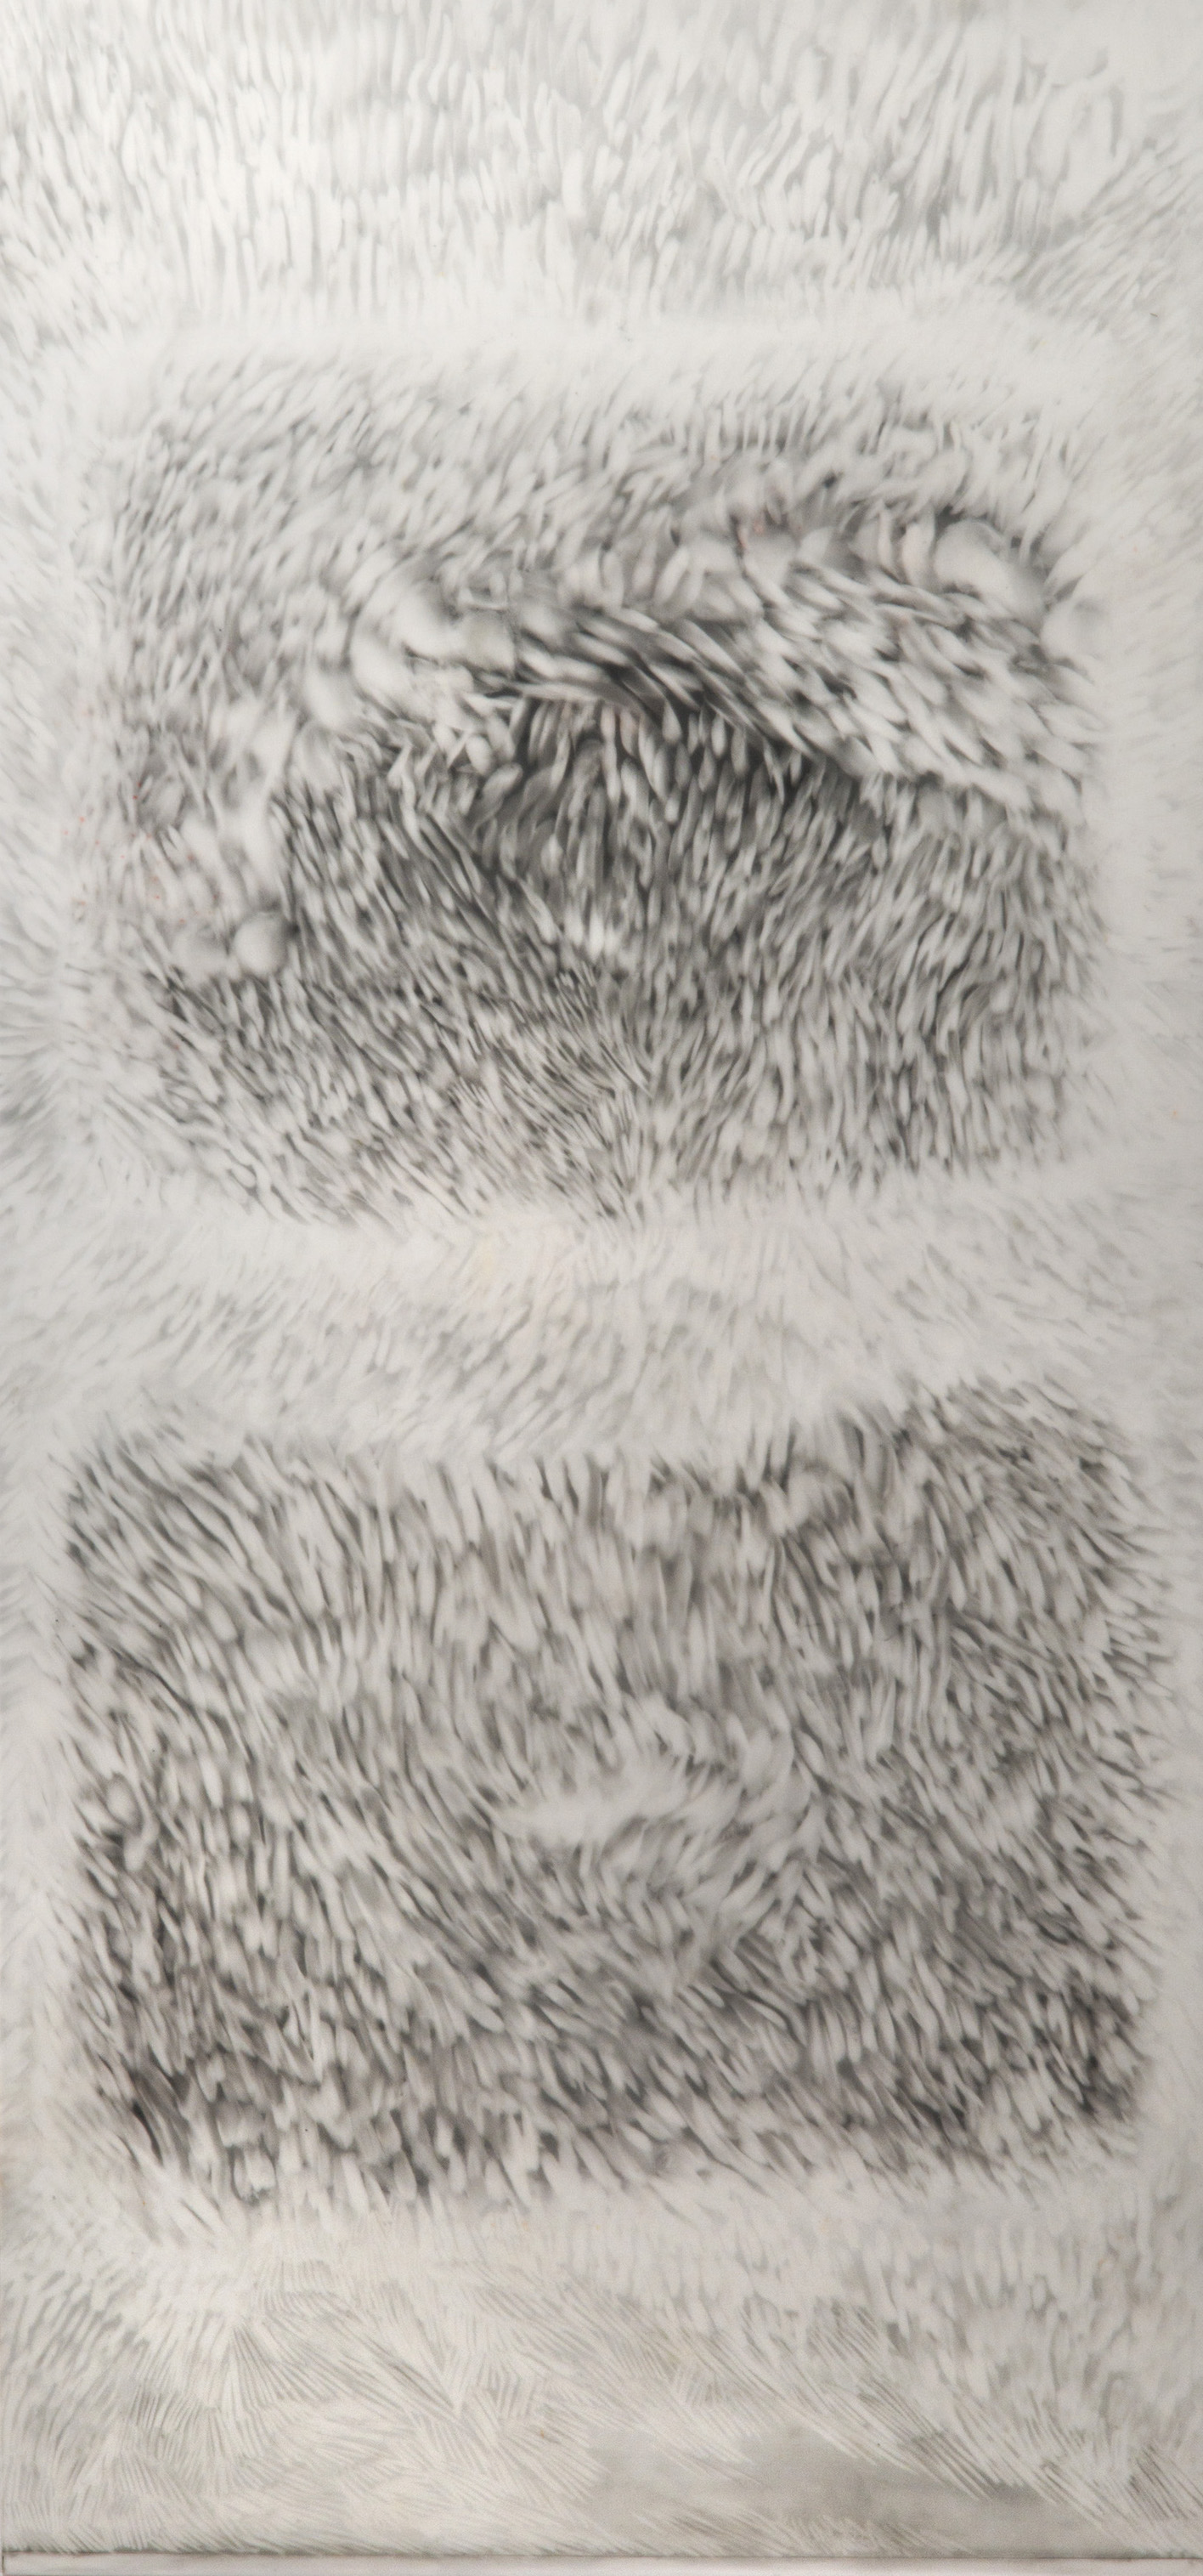 Observed and Recorded Permutation of the Holy Spirit I (9.625 inches x 20.75 inches-pastel and graphite erasings on duralar)